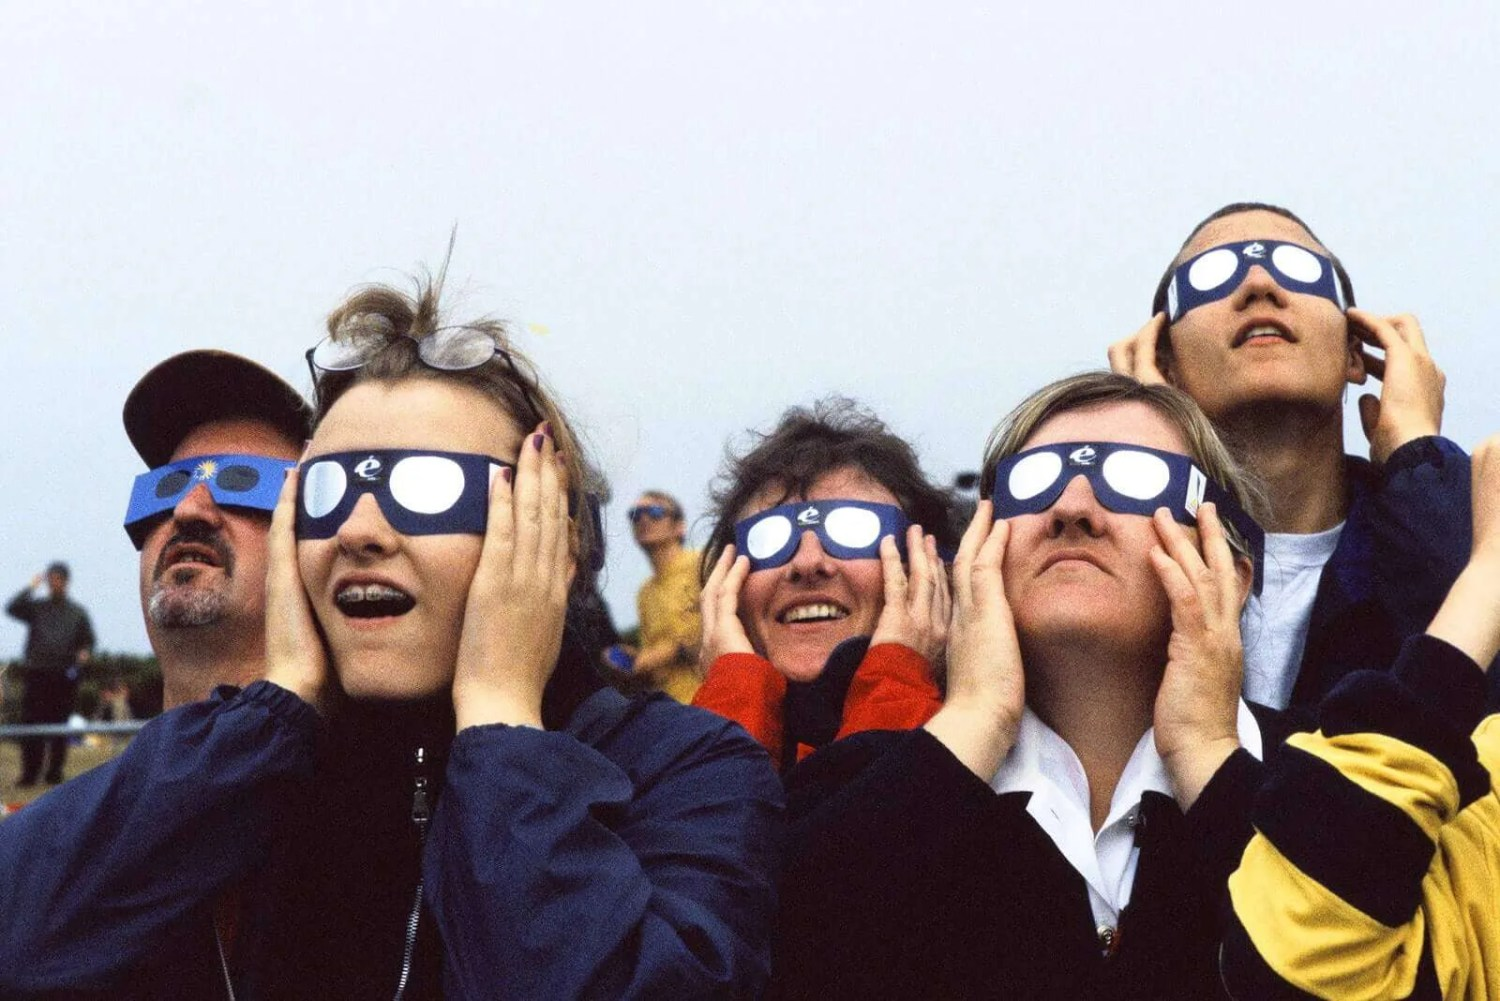 People looking up at a bright light in dark glasses